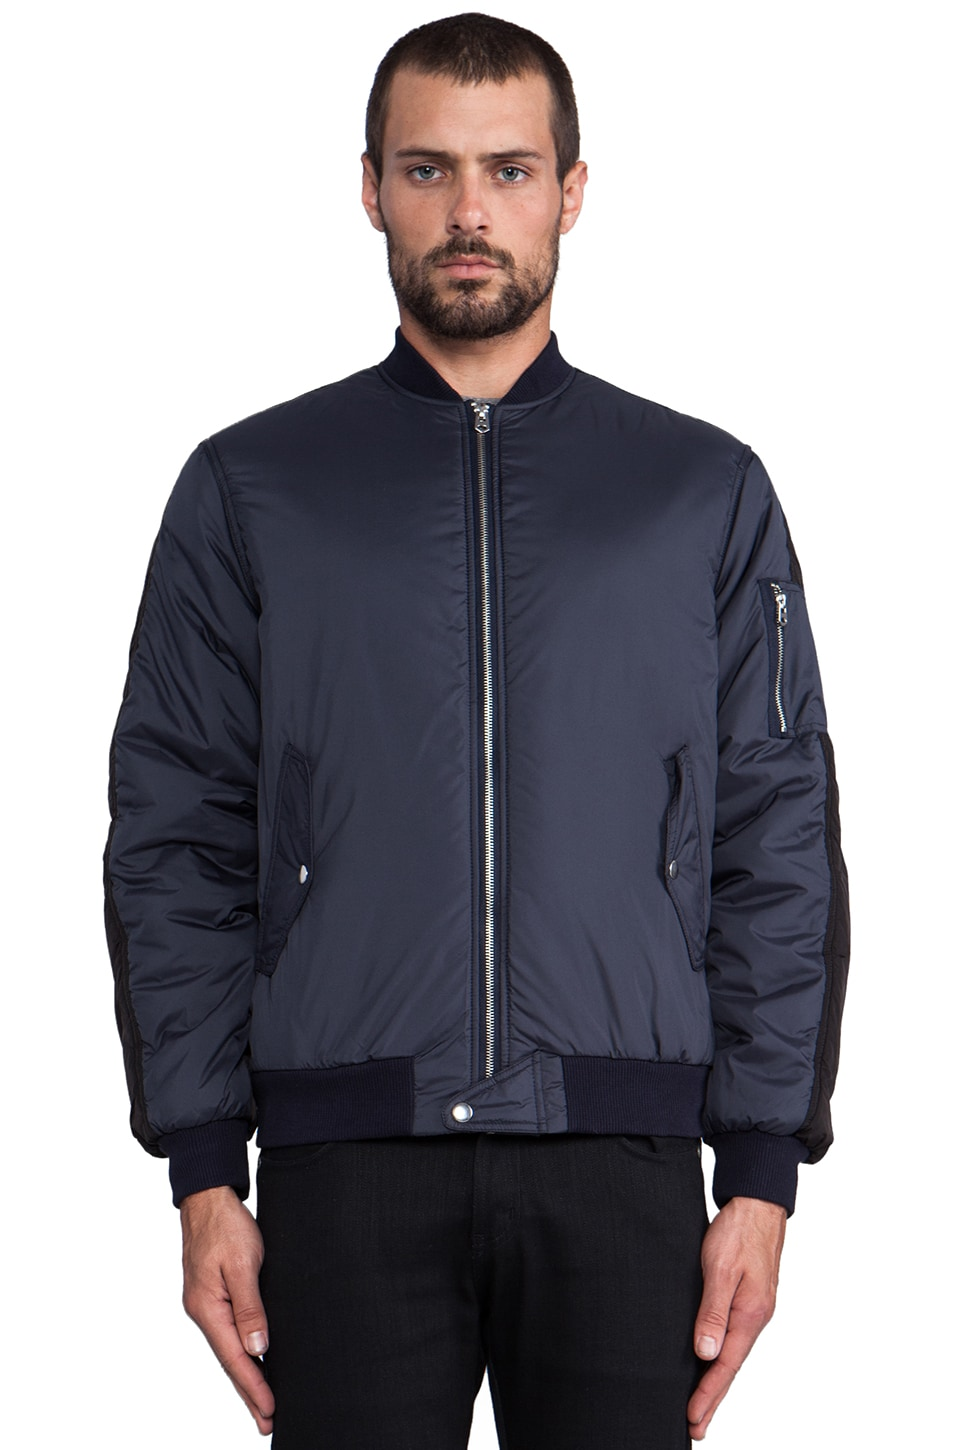 Shades of Grey by Micah Cohen Contrast MA-1 Jacket in Navy/Black